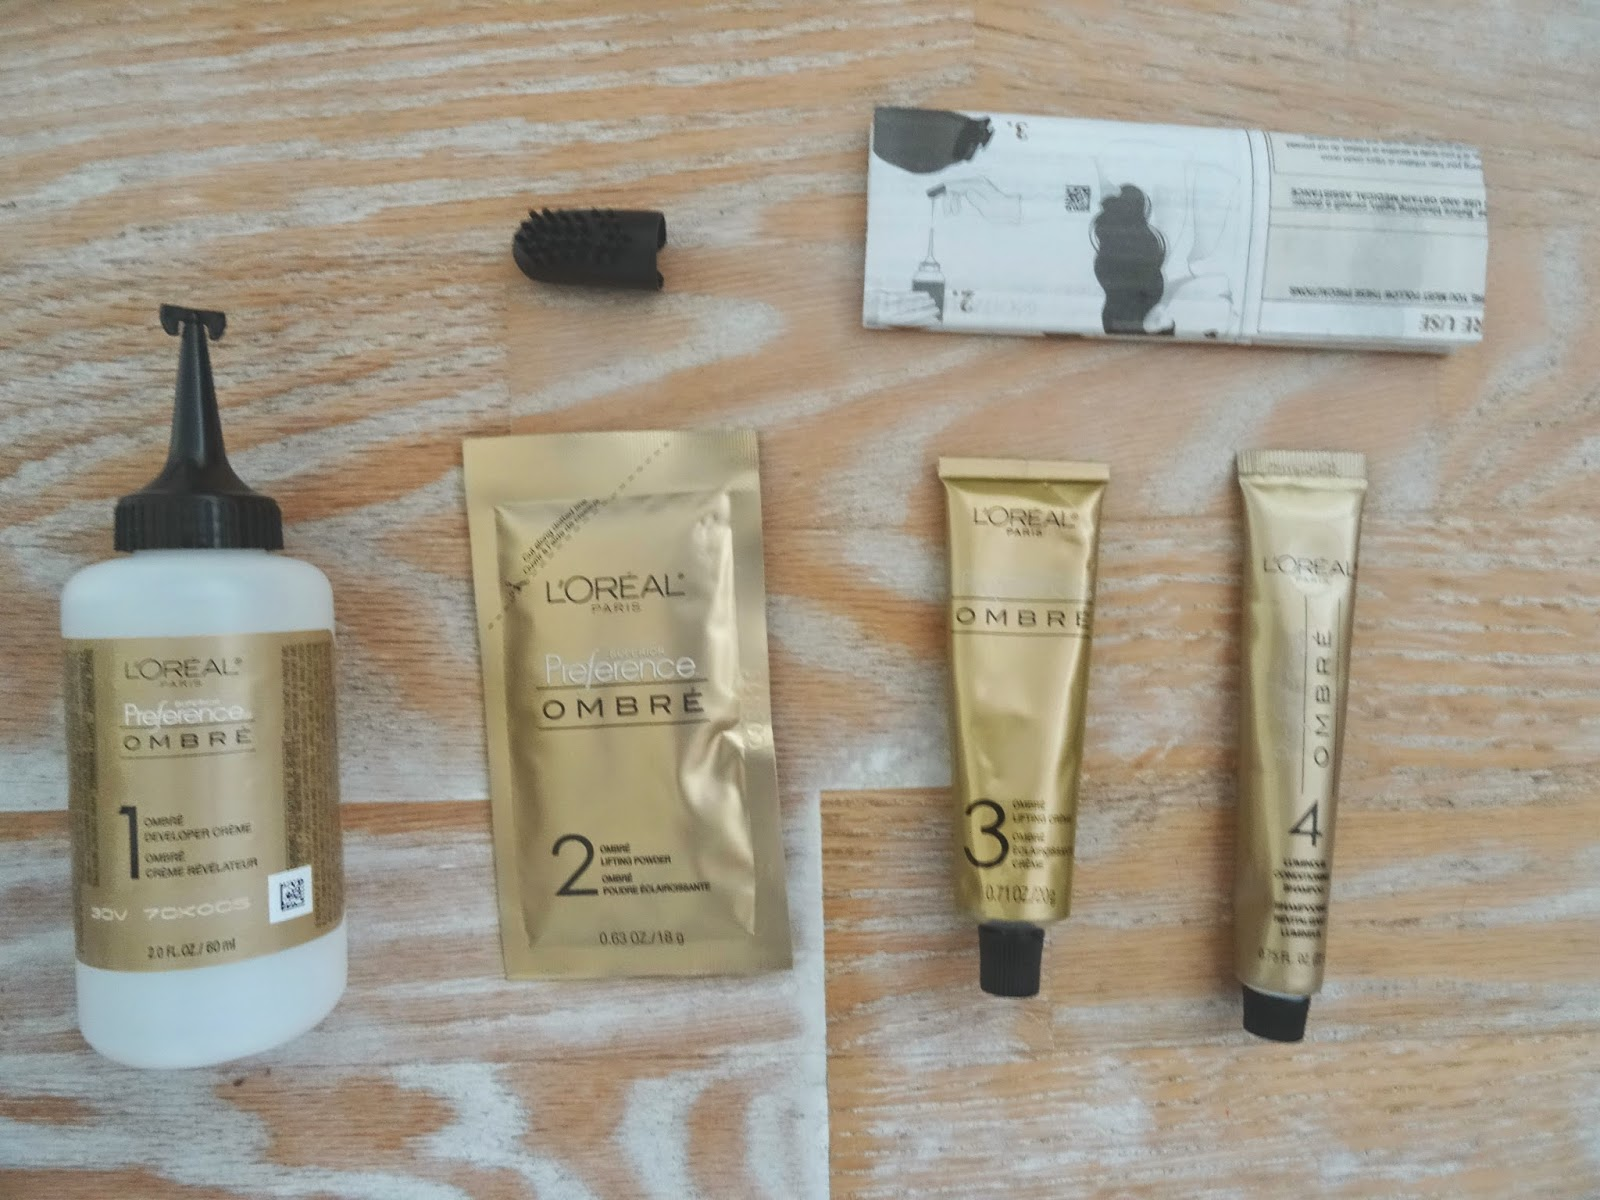 L'Oreal Paris Preference Ombre Touch